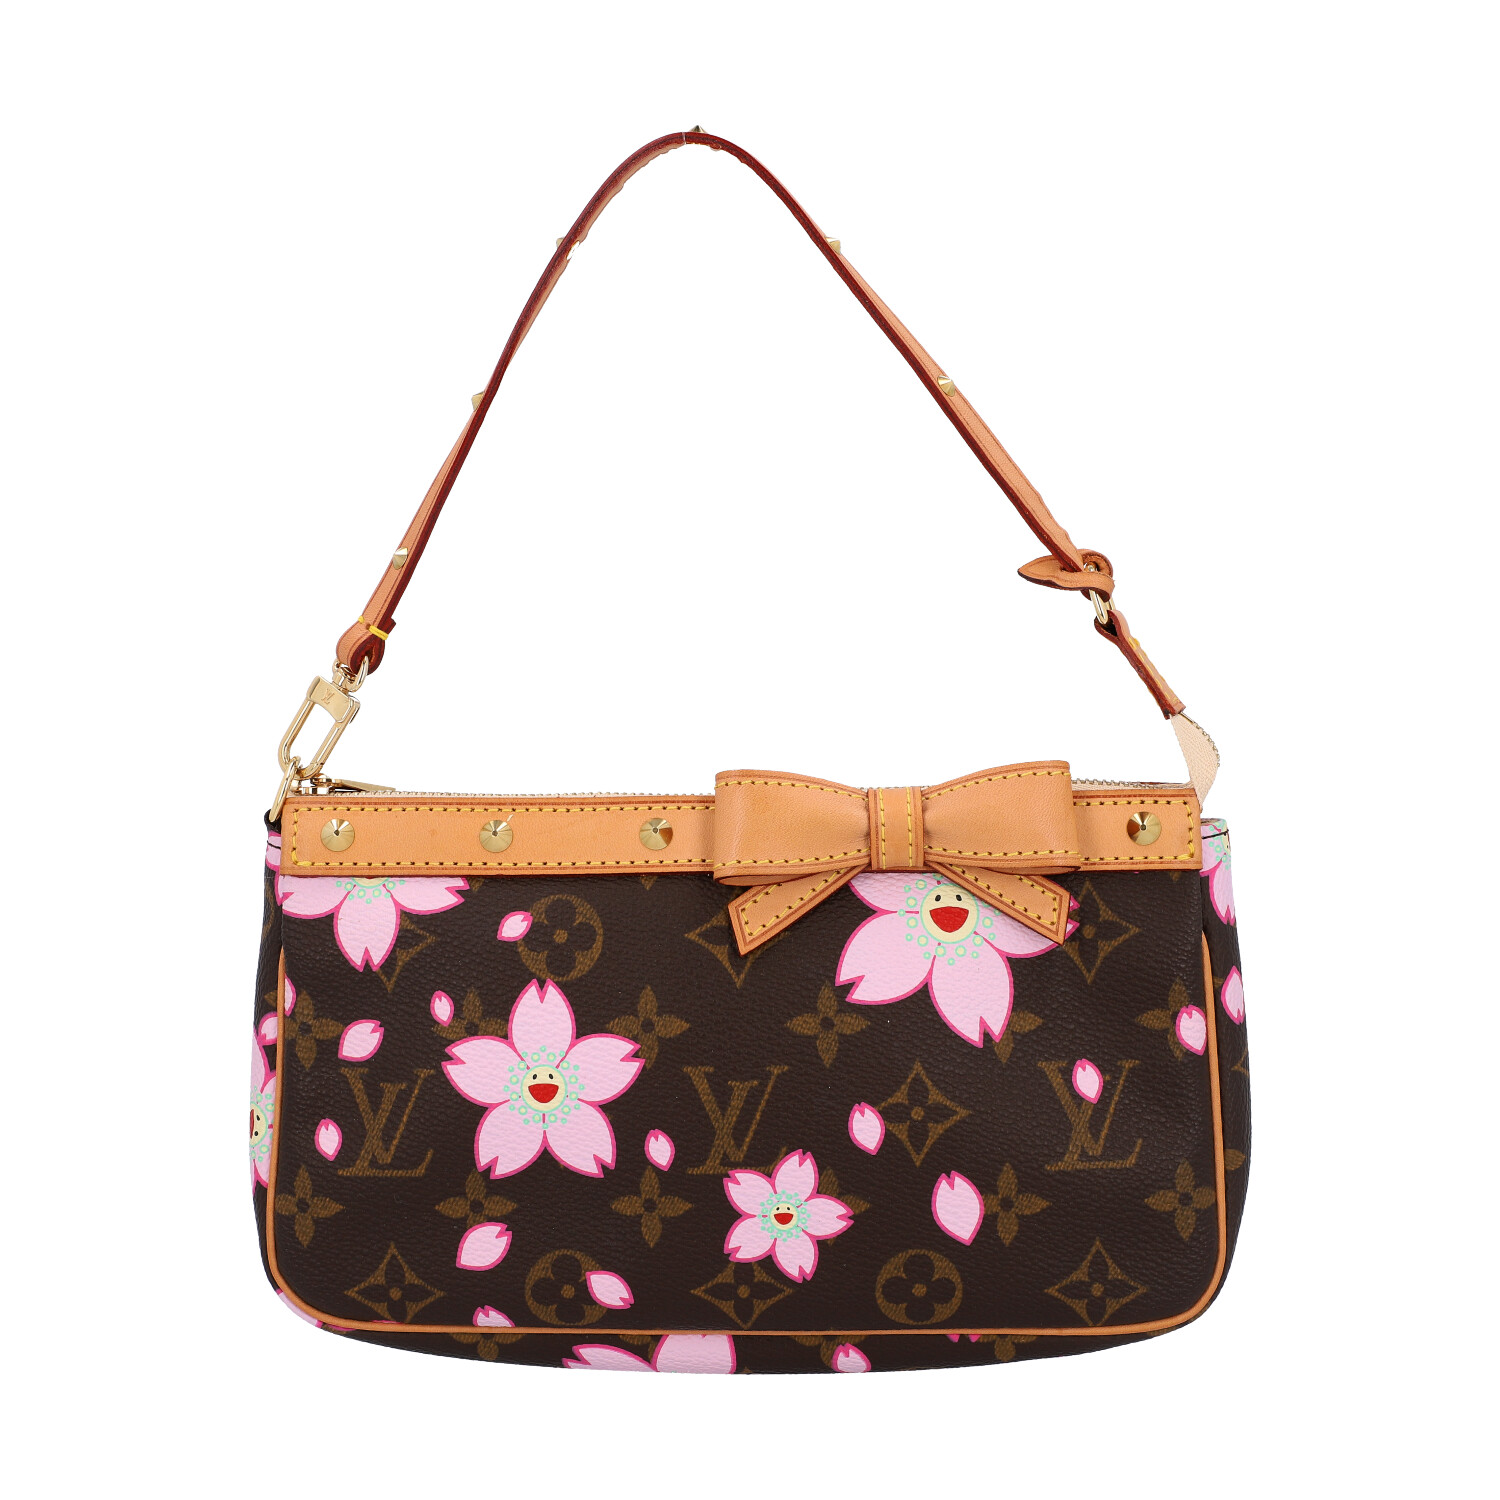 "Lot 15 - LOUIS VUITTON Pochette ""POCHETTE ACCESSOIRES"", Koll.: 2003.Cherry Blossom Kollektion Monogram Canvas"